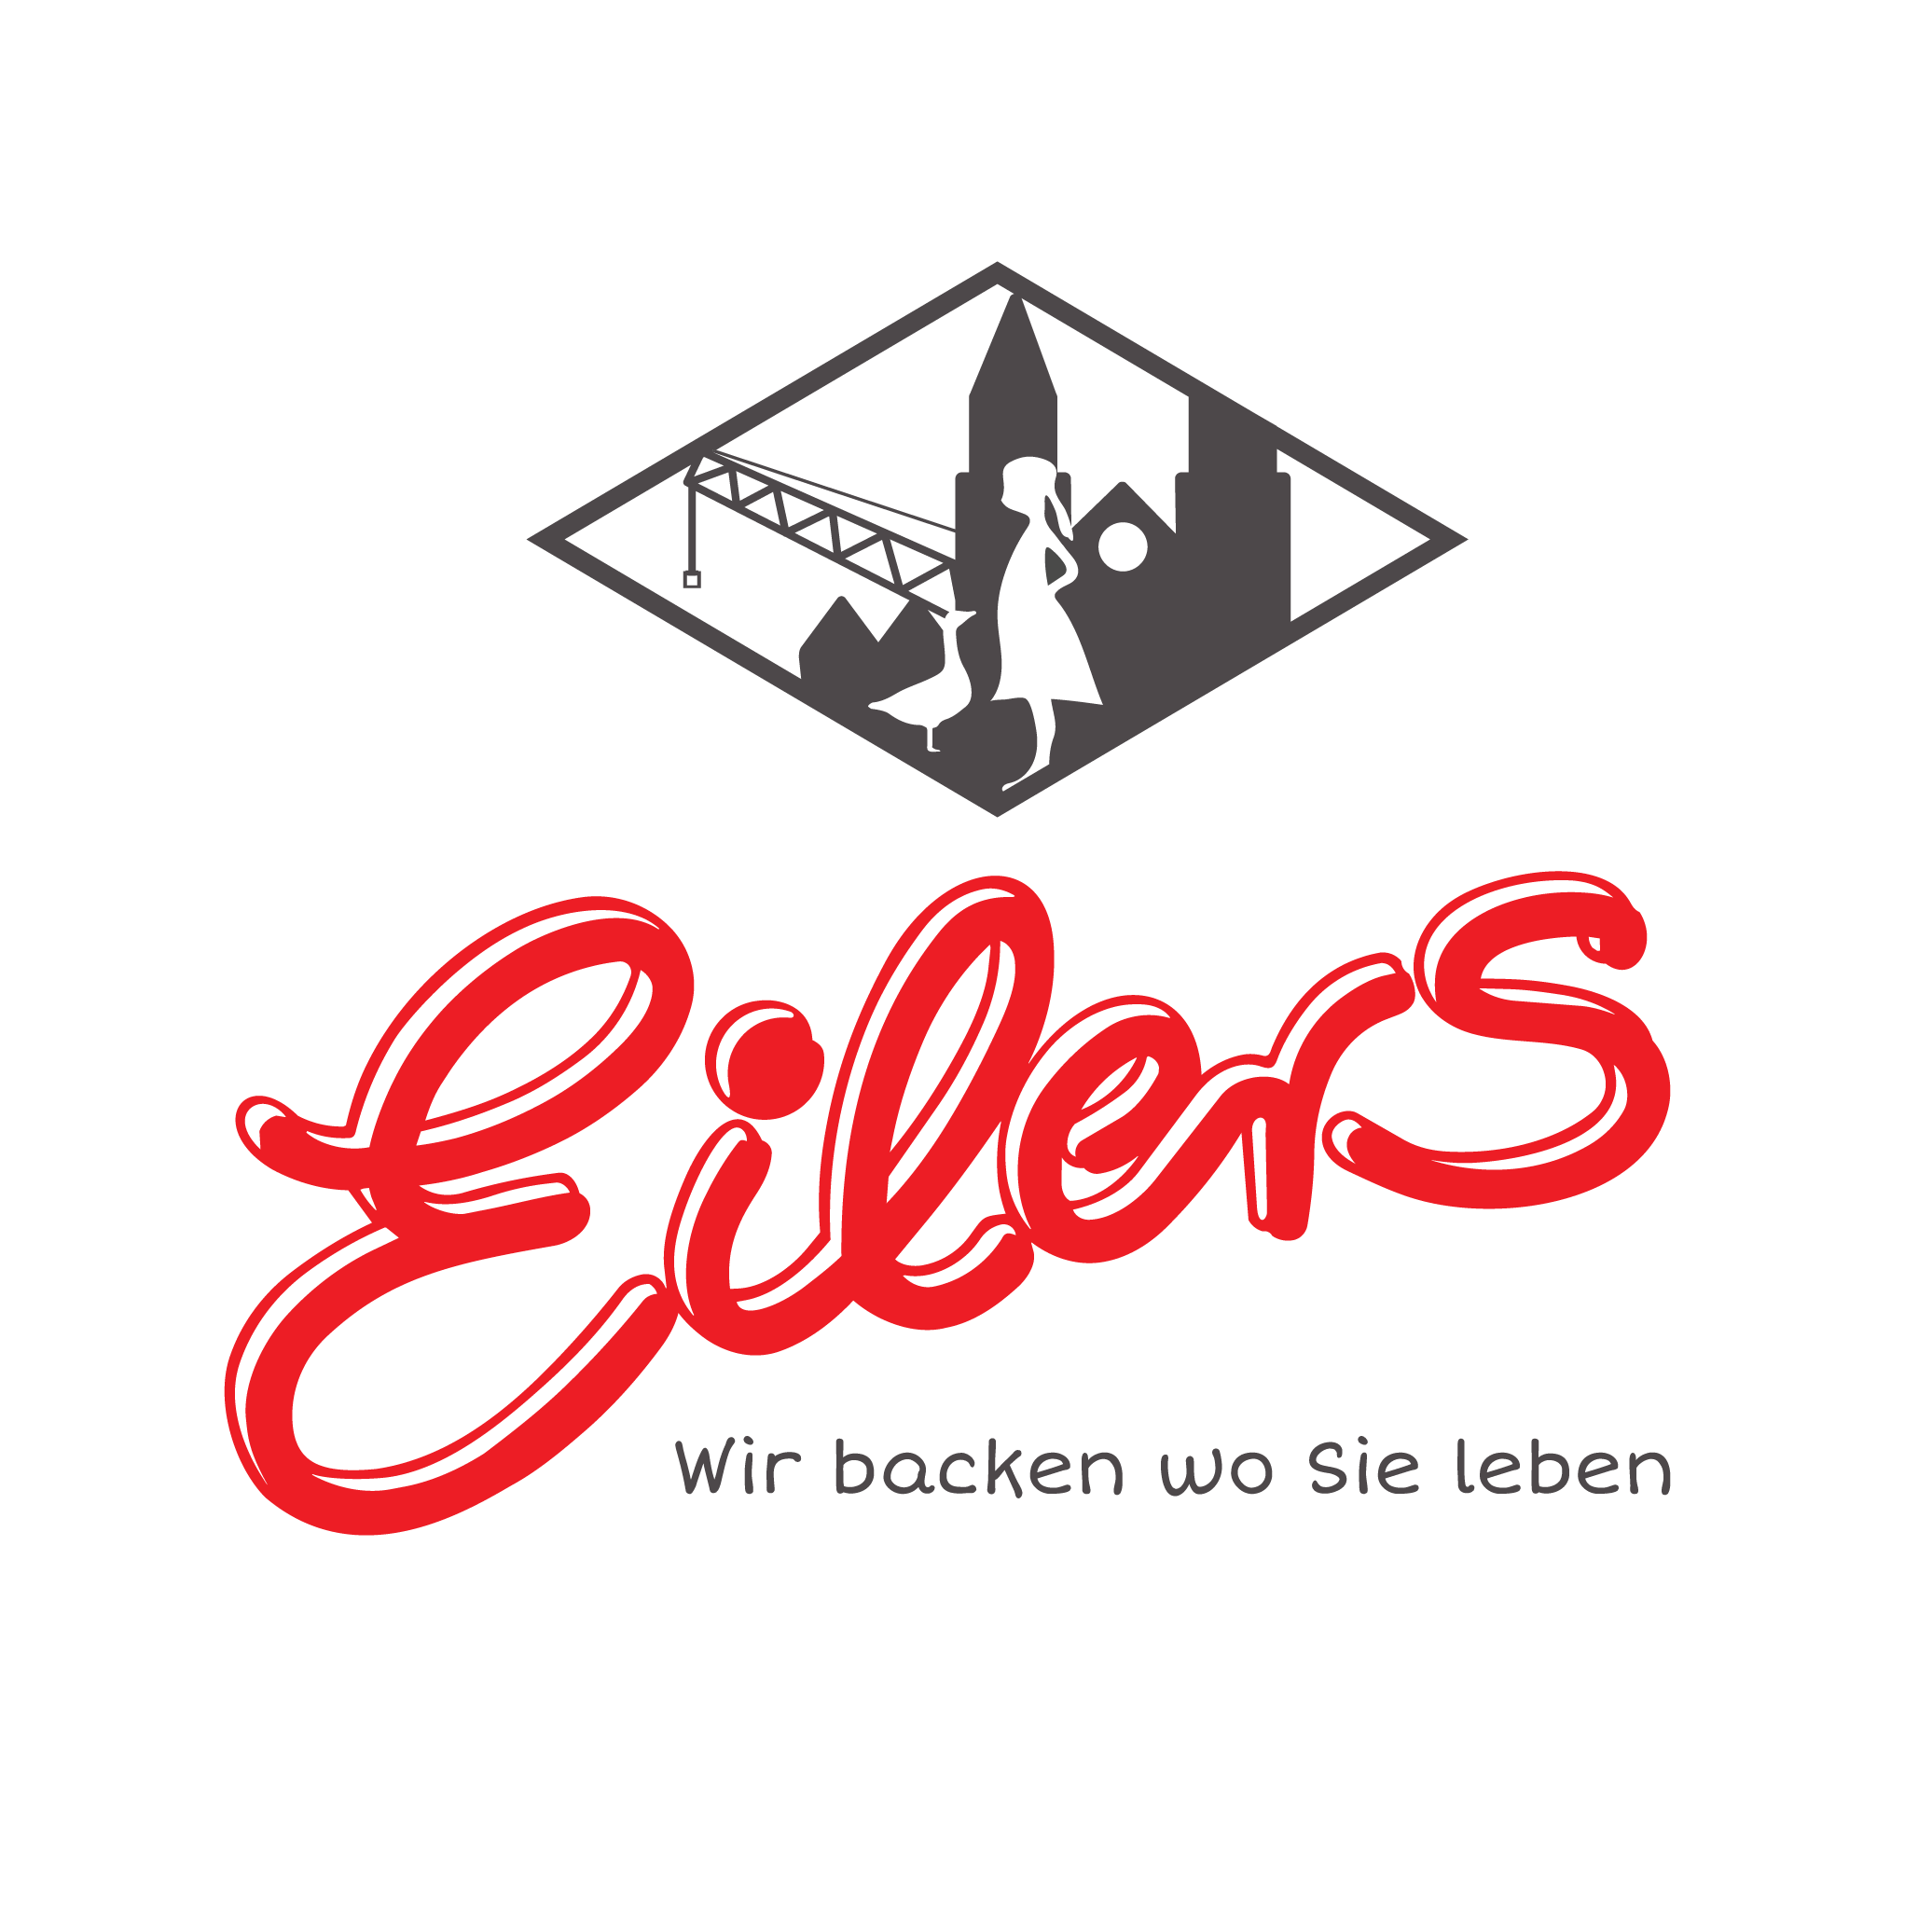 cafe.eilers